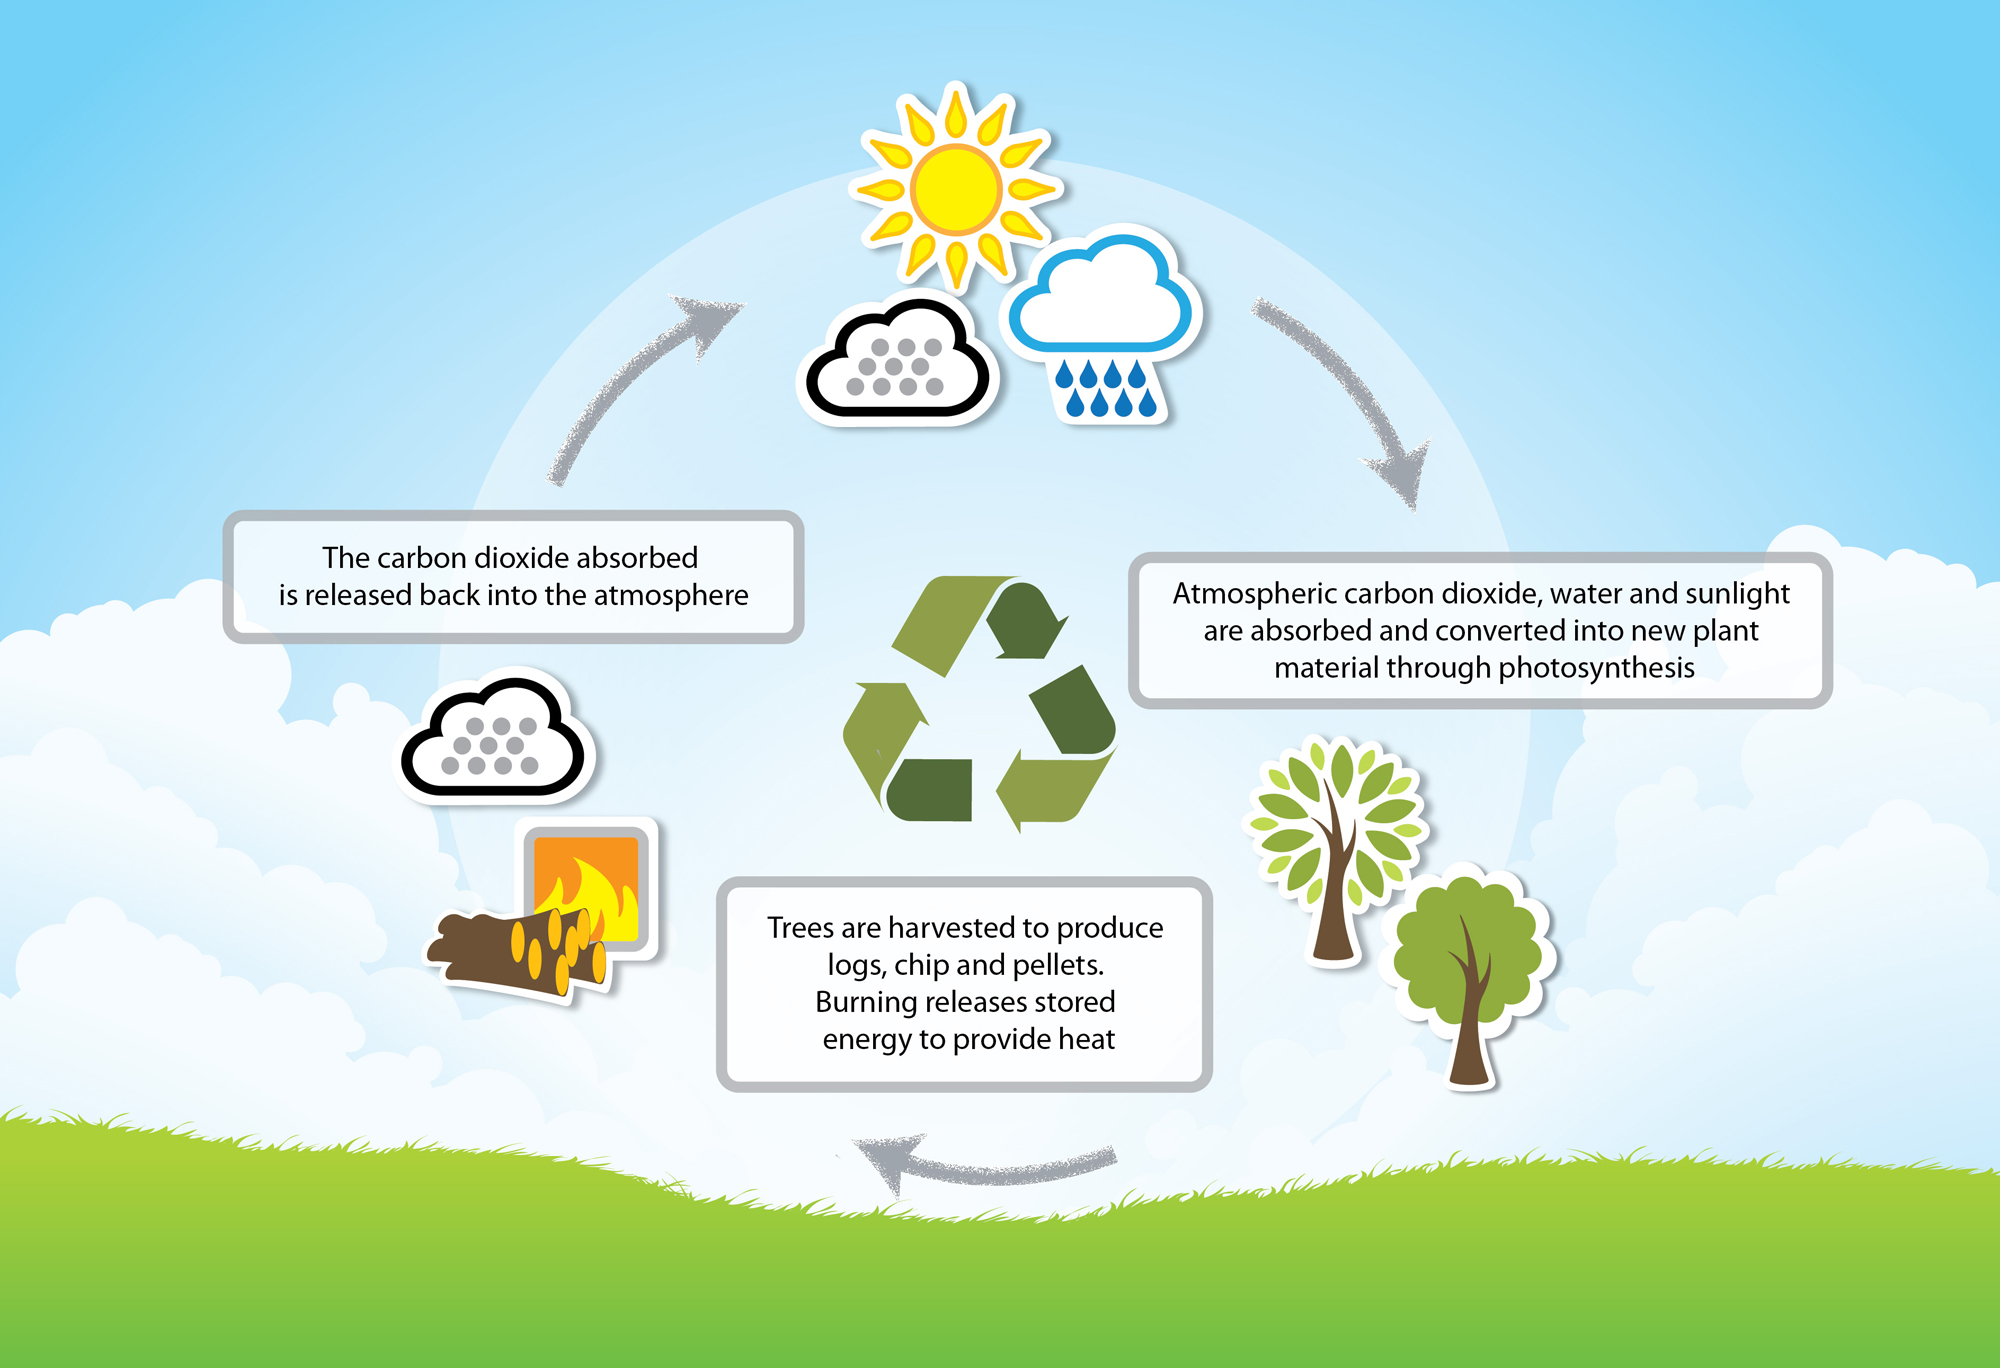 Biomass Renewable Energy ~ Biomass a renewable energy source or danger to the